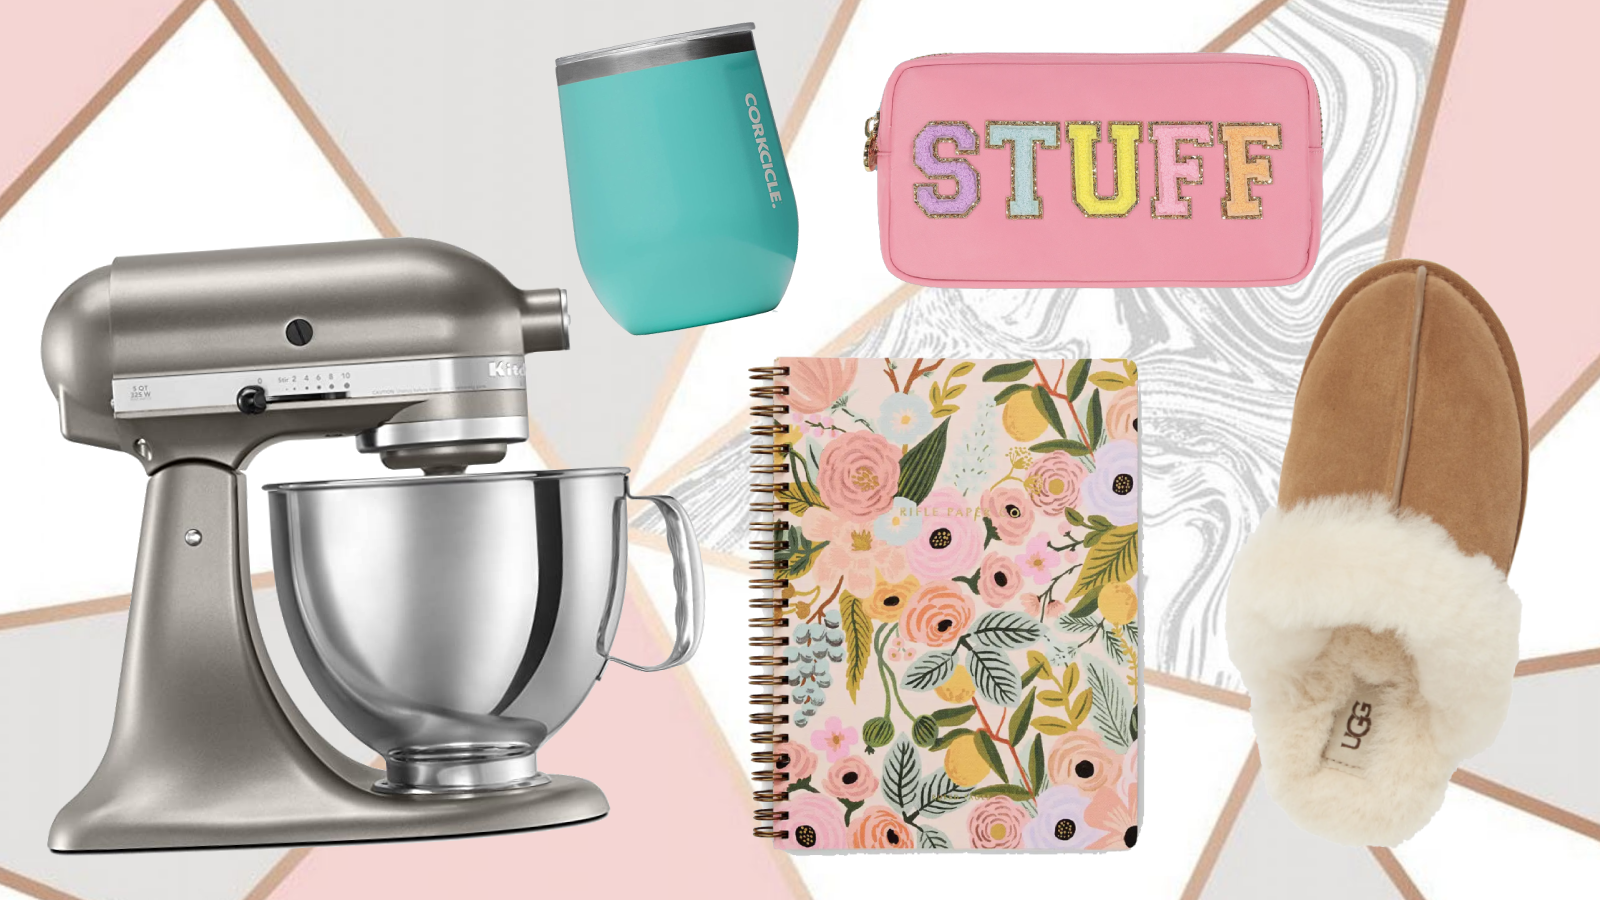 Best Gifts For Girlfriends 40 Gift Ideas That She Will Actually Love